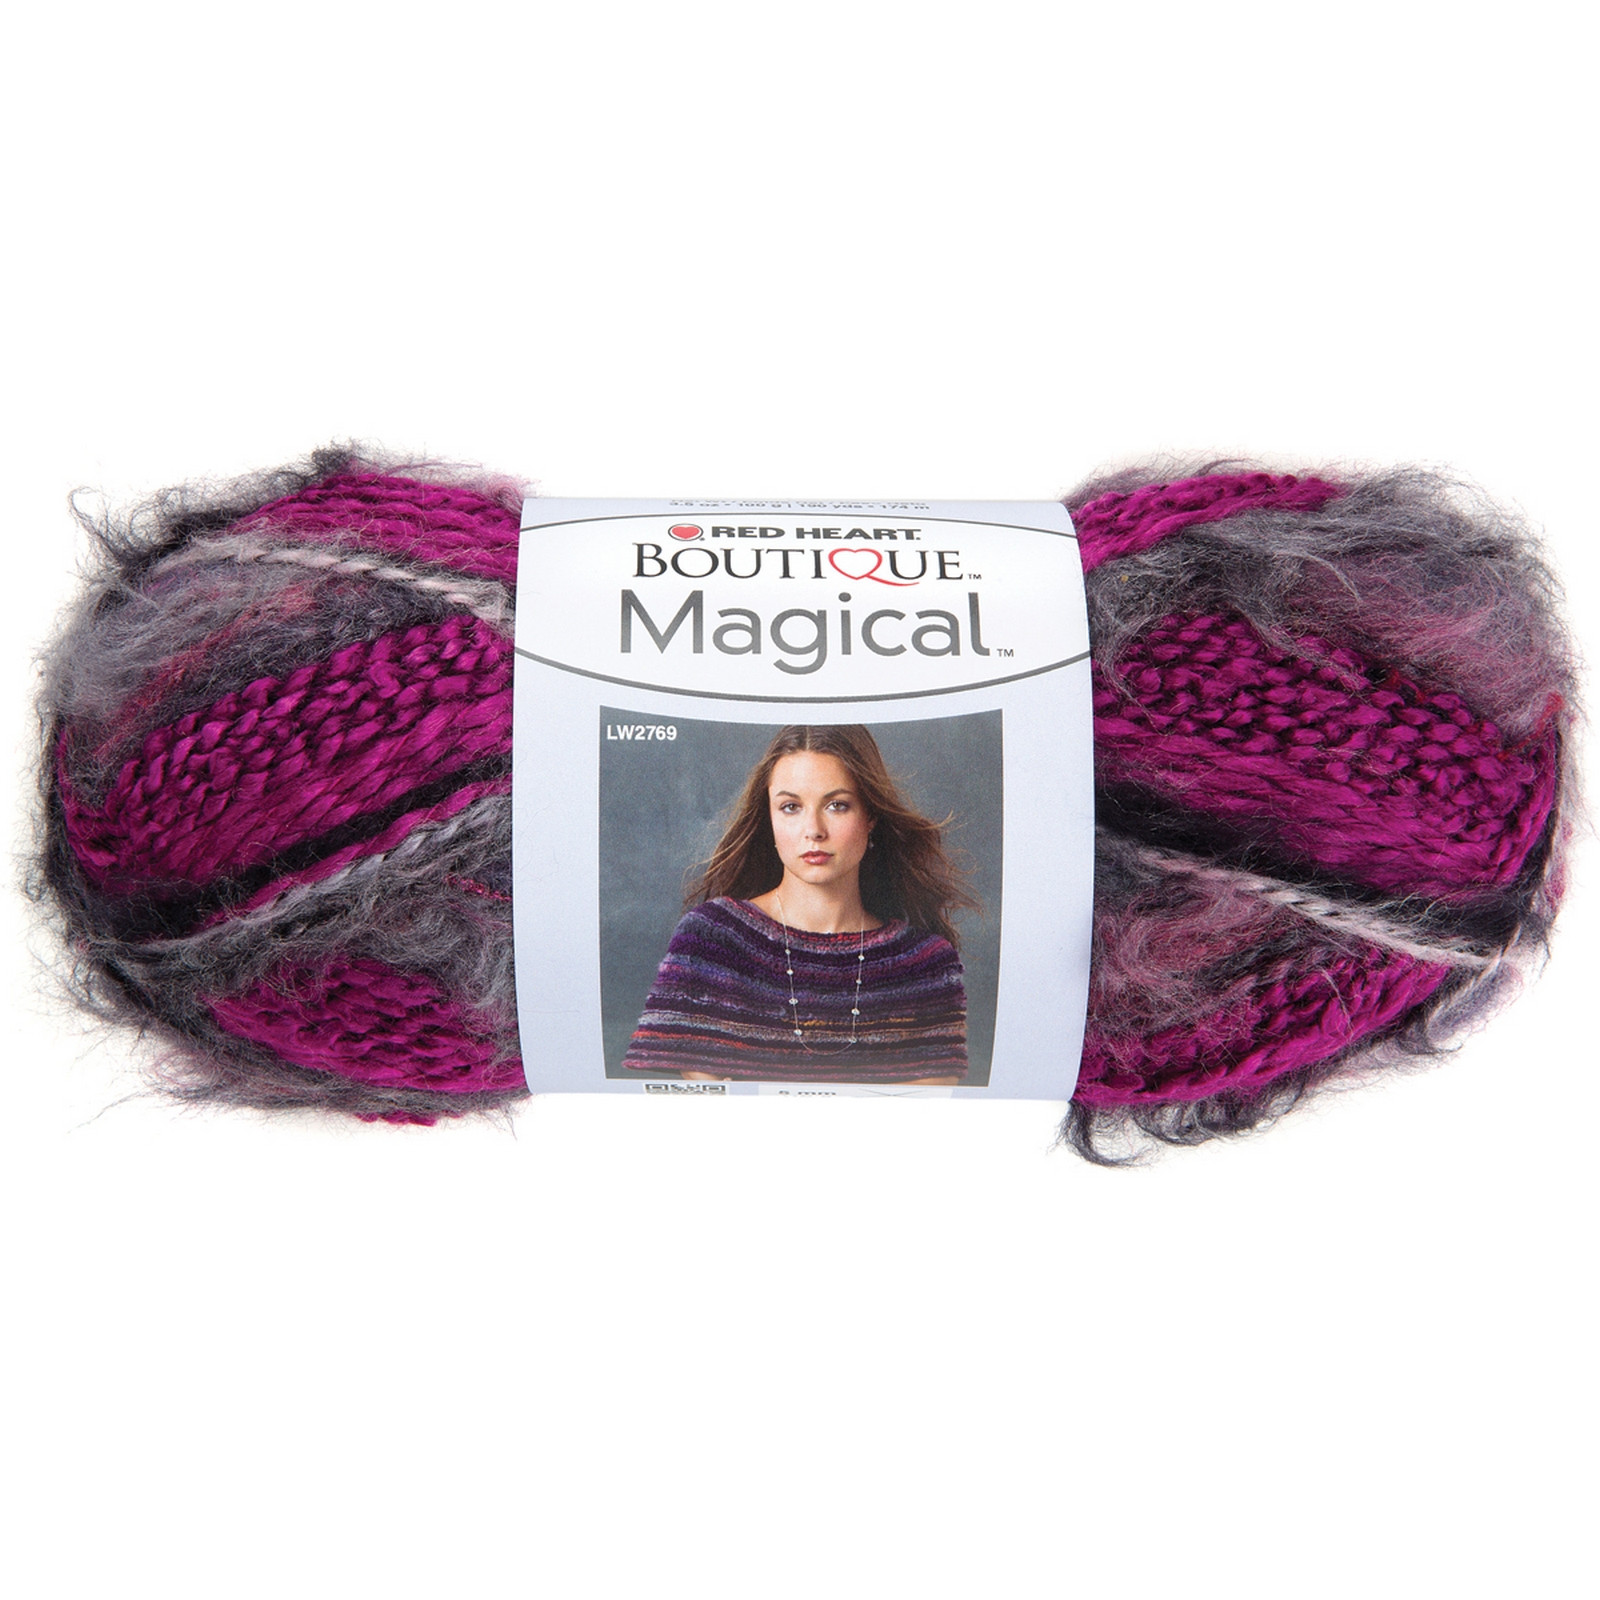 Red Heart Boutique Magical Yarn Spellbound Home Crafts